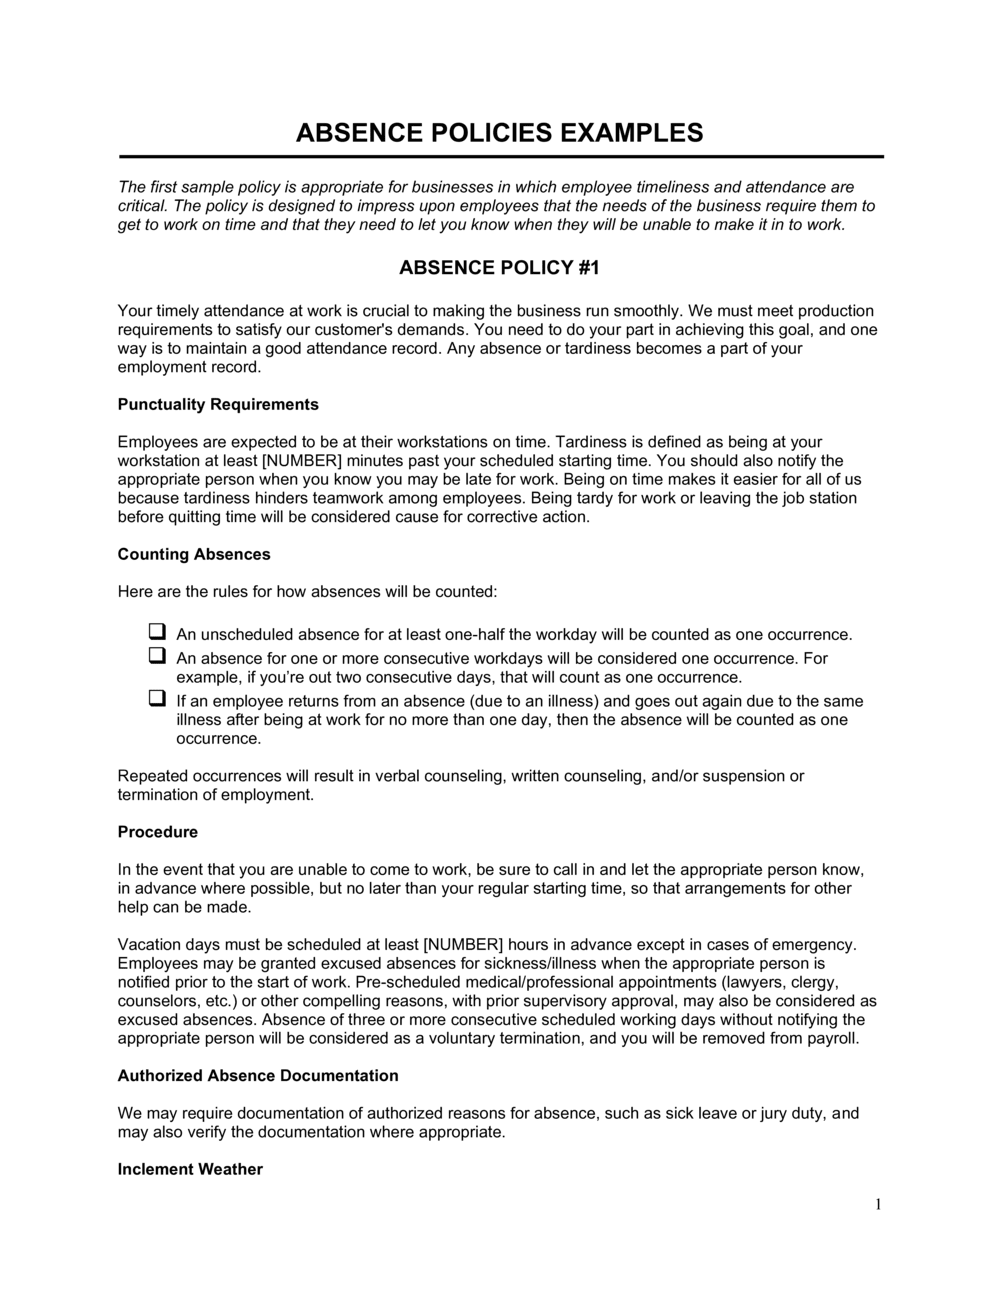 Business-in-a-Box's Absence Policies Template